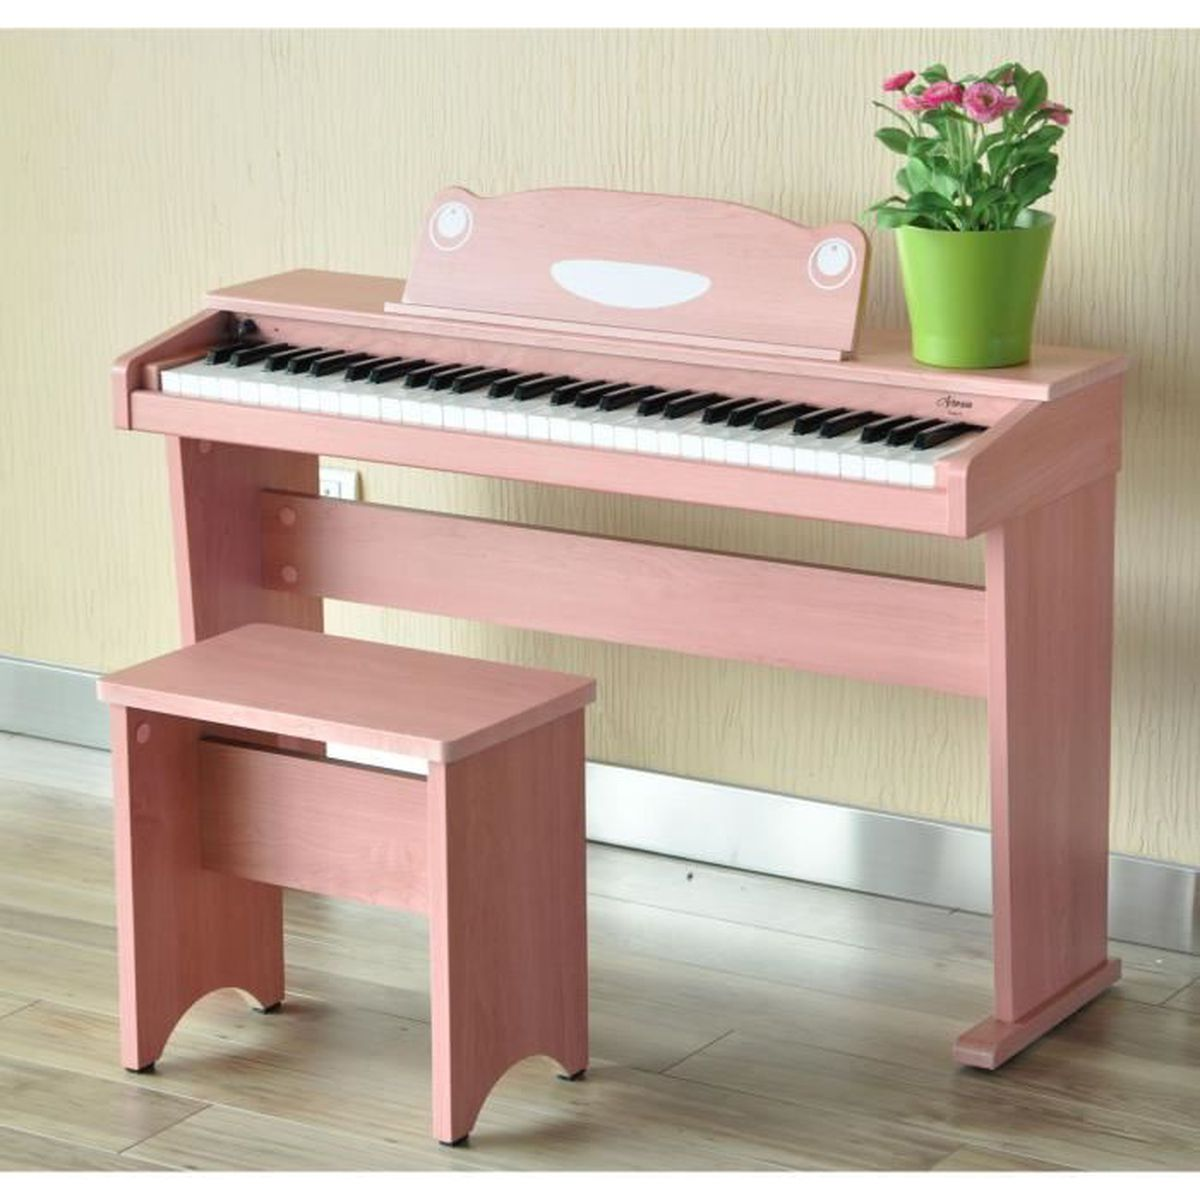 artesia f 61wm keyboard 61 touches au design de piano lectronique rose pas cher achat. Black Bedroom Furniture Sets. Home Design Ideas